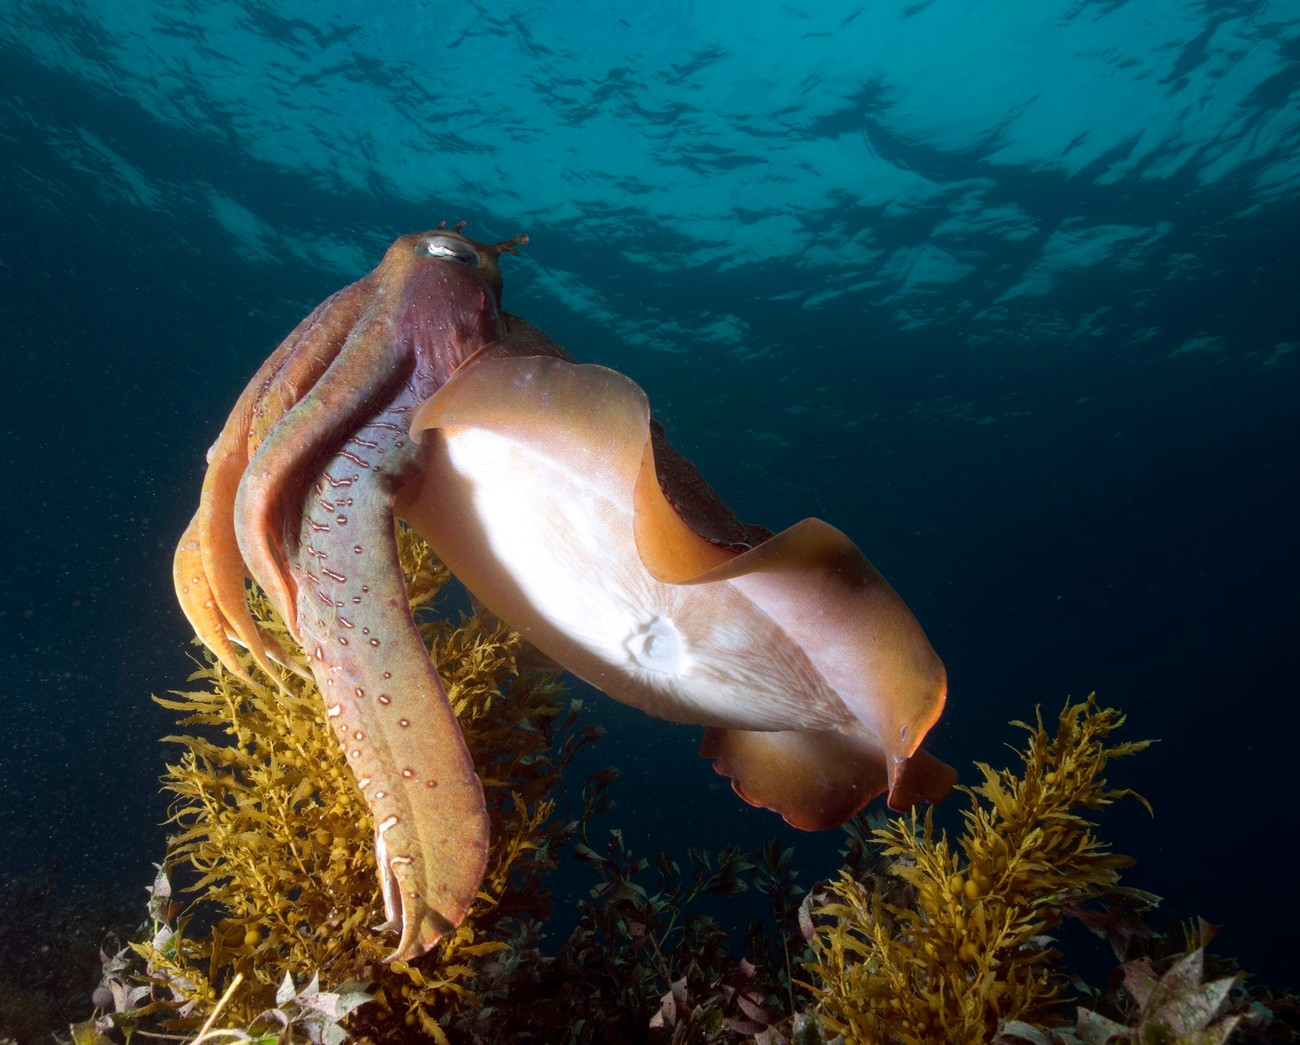 this friendly cuttlefish was happy to pose for the camera and wasn't too shy which was a bit of a surprise considering he has a bit missing from underneath him. I tried to get underneath and shot upwards with the strobes light him from below to help with the colour